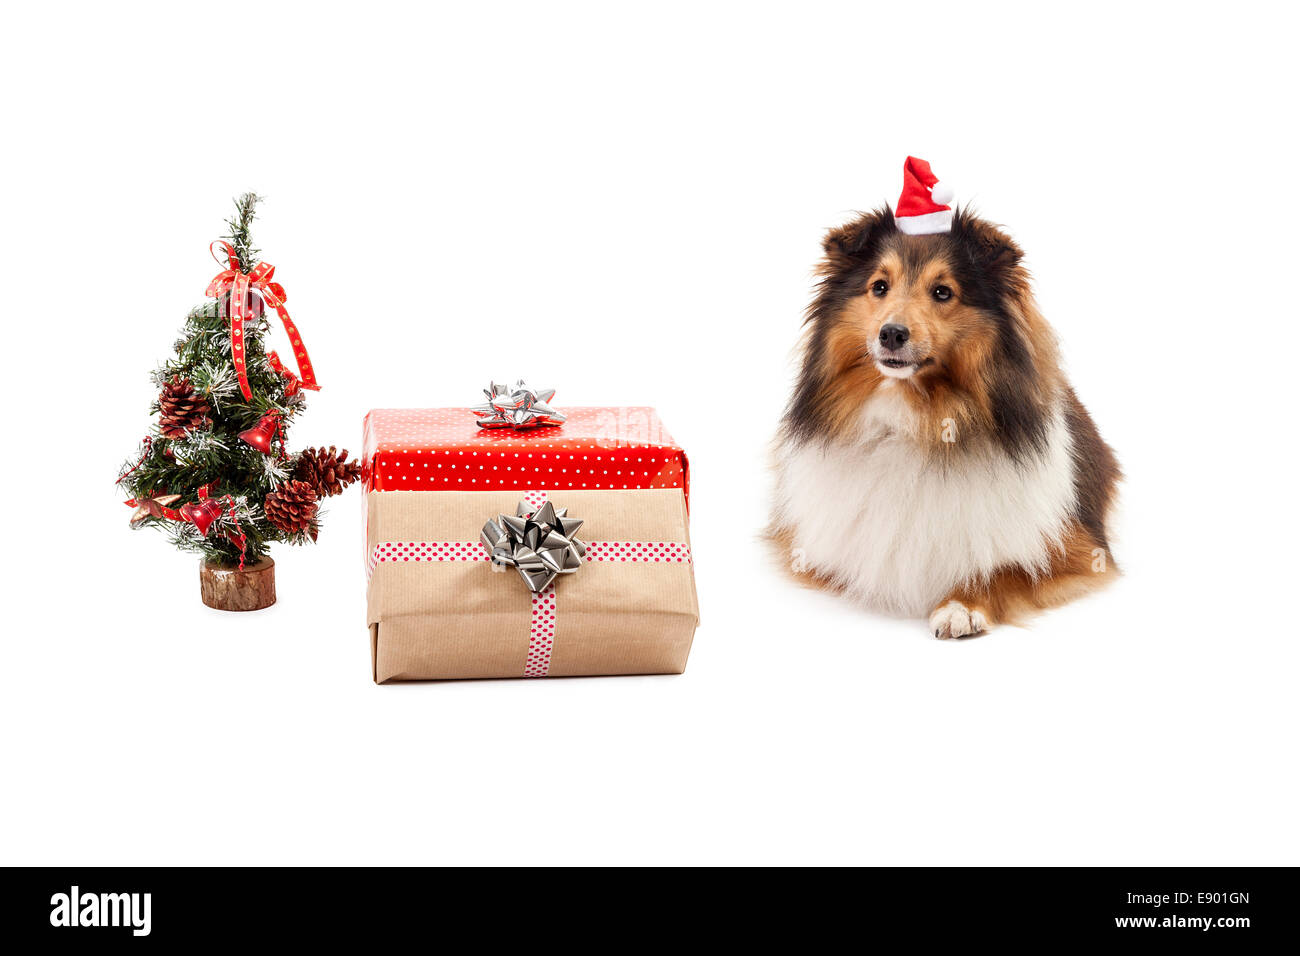 Shetland sheepdog with gifts and christmas tree over white background - Stock Image